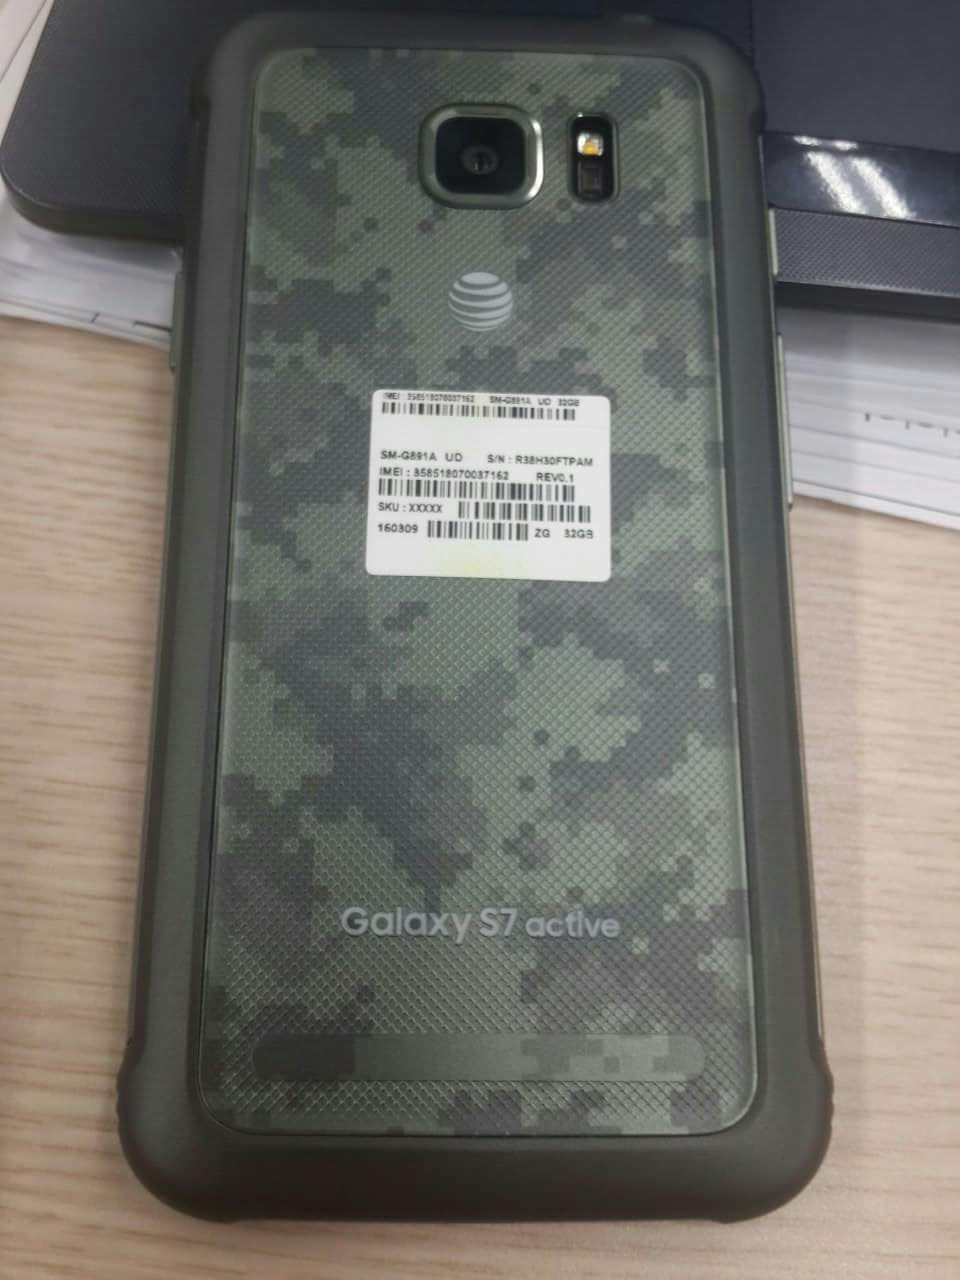 Samsung-Galaxy-S7-Active-leaked-photos (1)